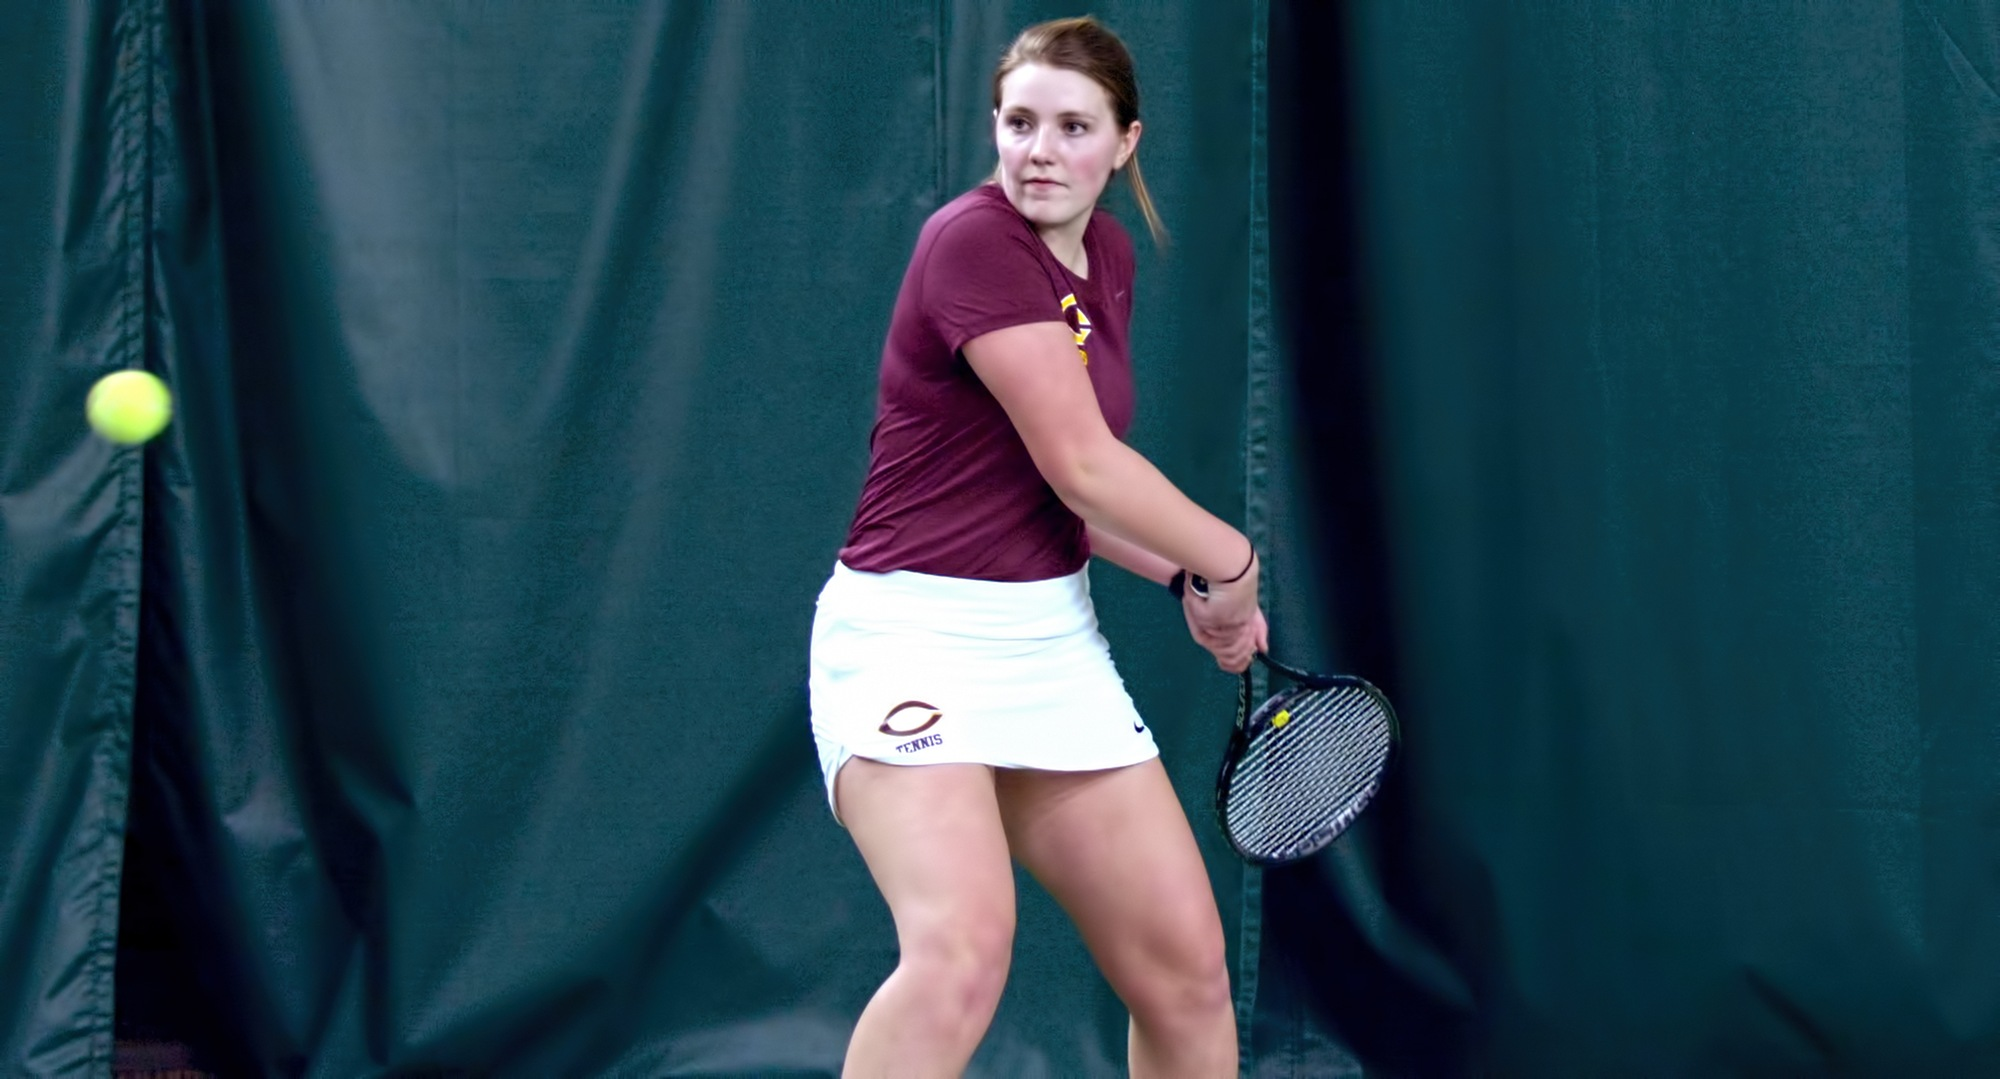 Junior Kendra Stoick rallied from losing the first set to win at No.1 singles in the Cobbbers' 8-1 victory at Minn.-Morris.